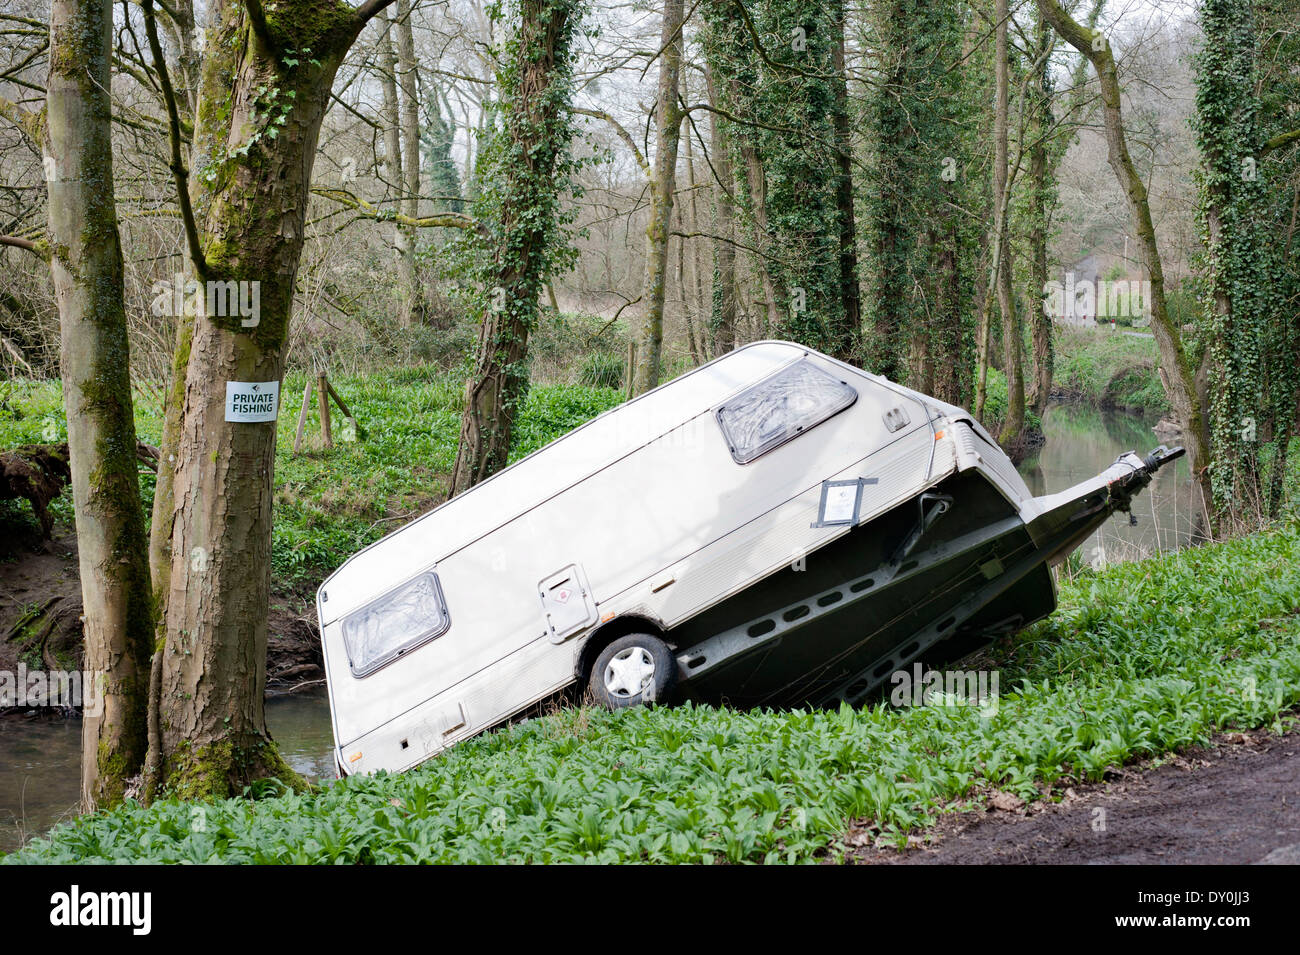 A caravan which has become stuck in the Little Avon river at Damery in Gloucestershire UK - Stock Image